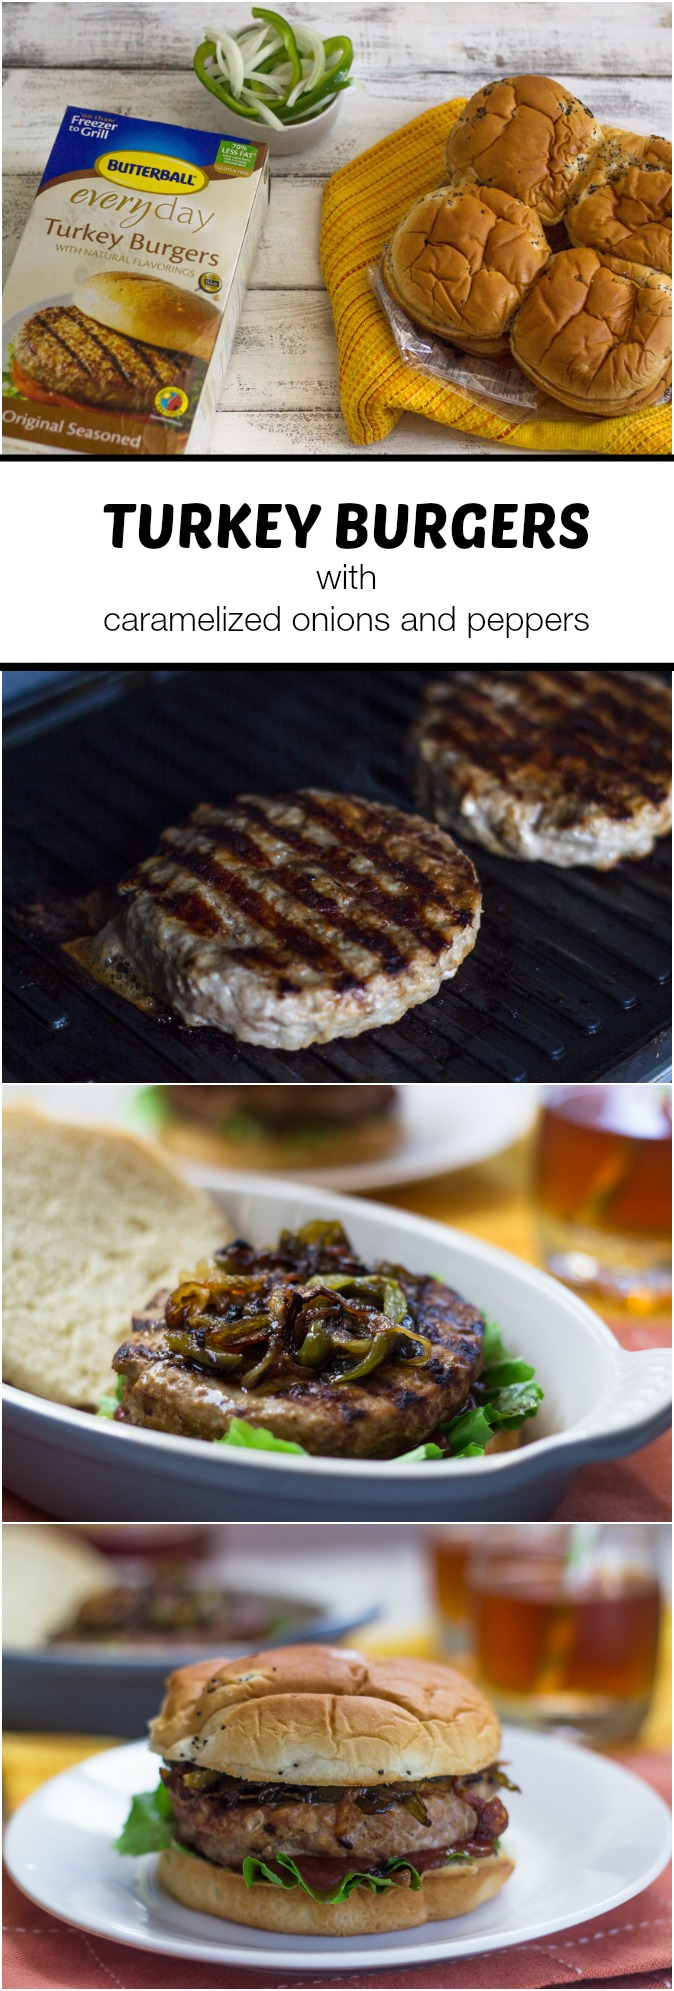 Turkey Burgers with Caramelized Onions and Bell Peppers